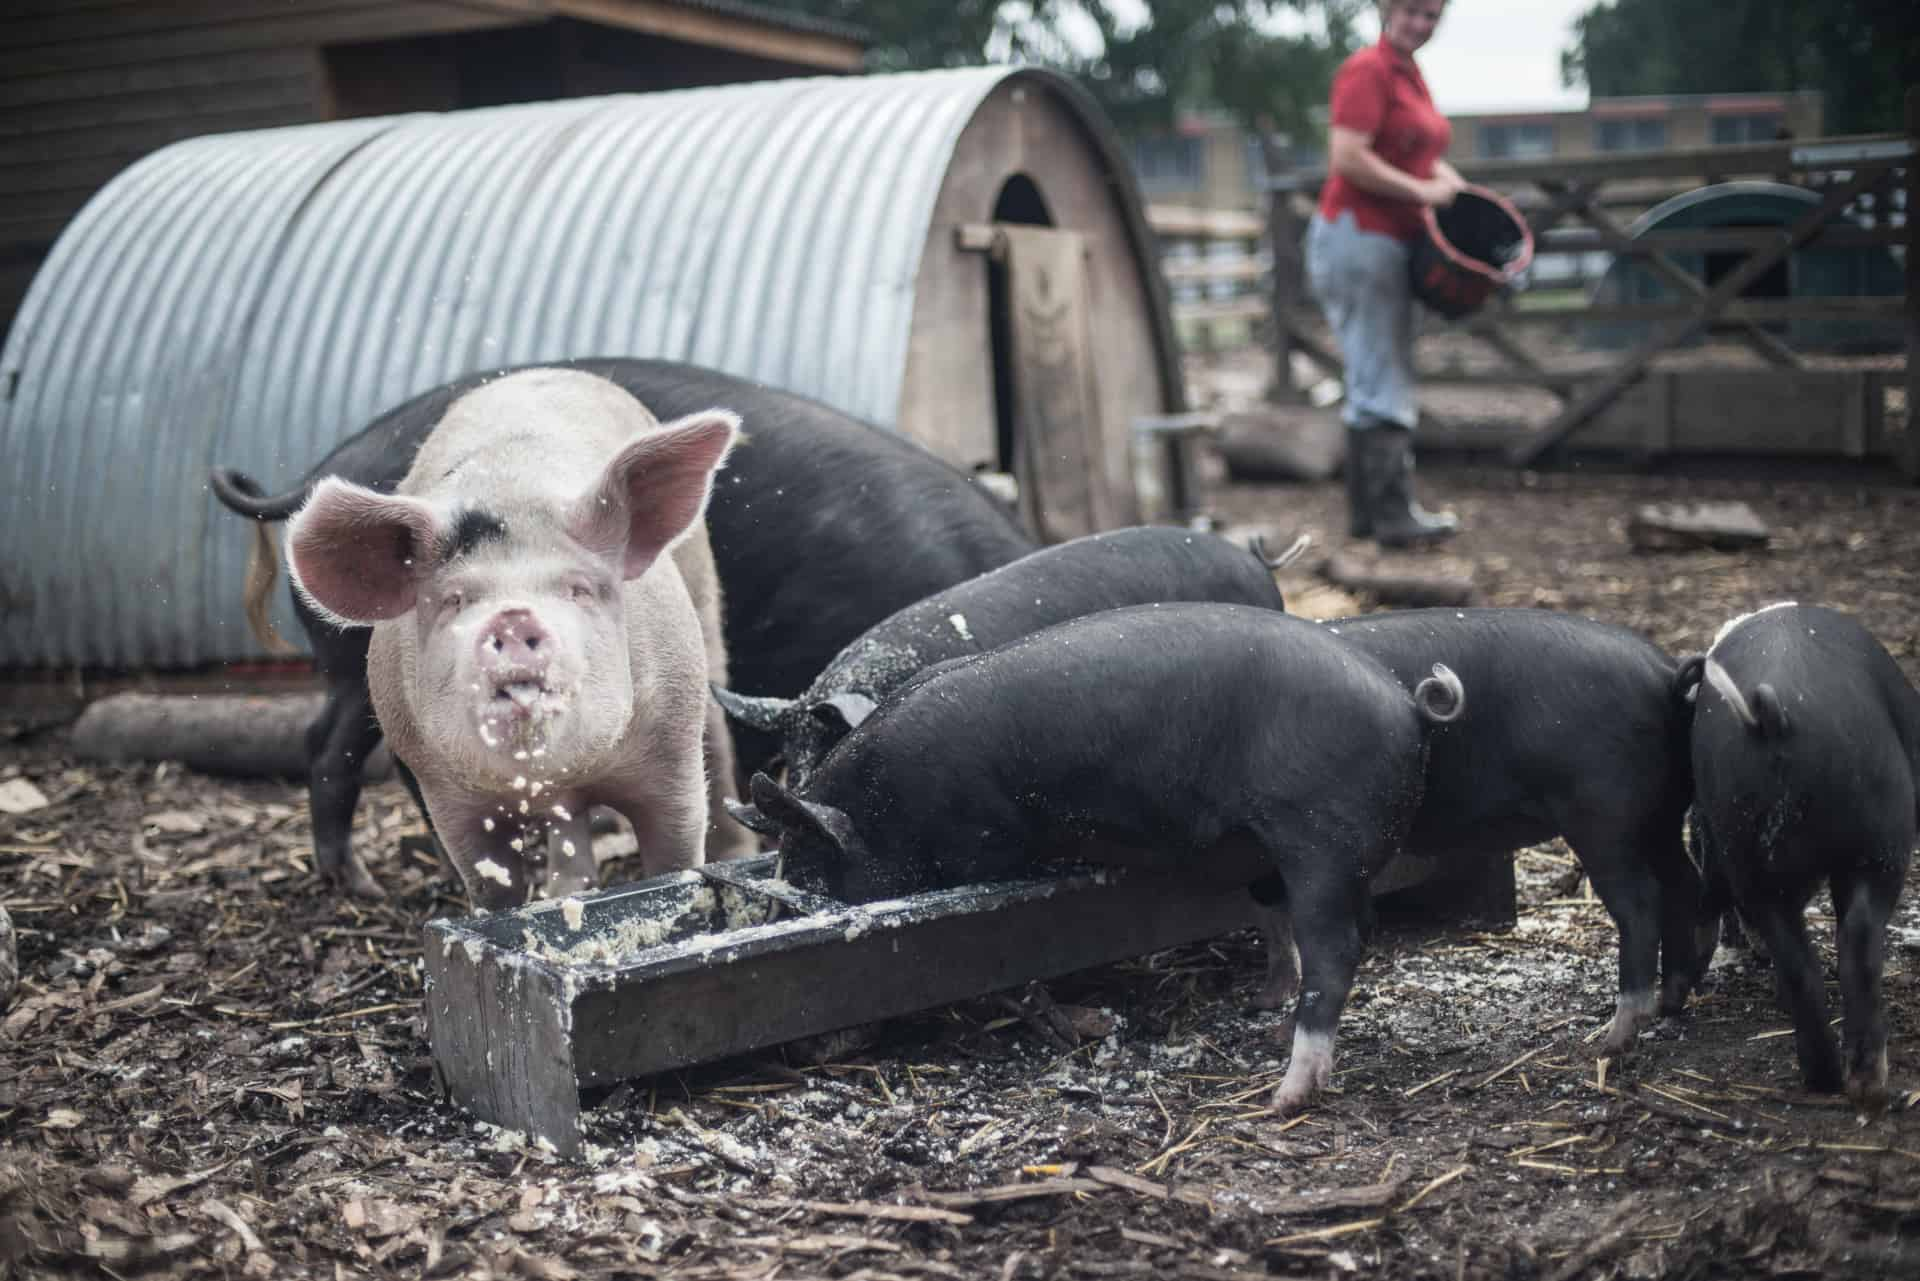 The Pig Idea campaign - Documentary Photography by Chris King for Open Eye Media